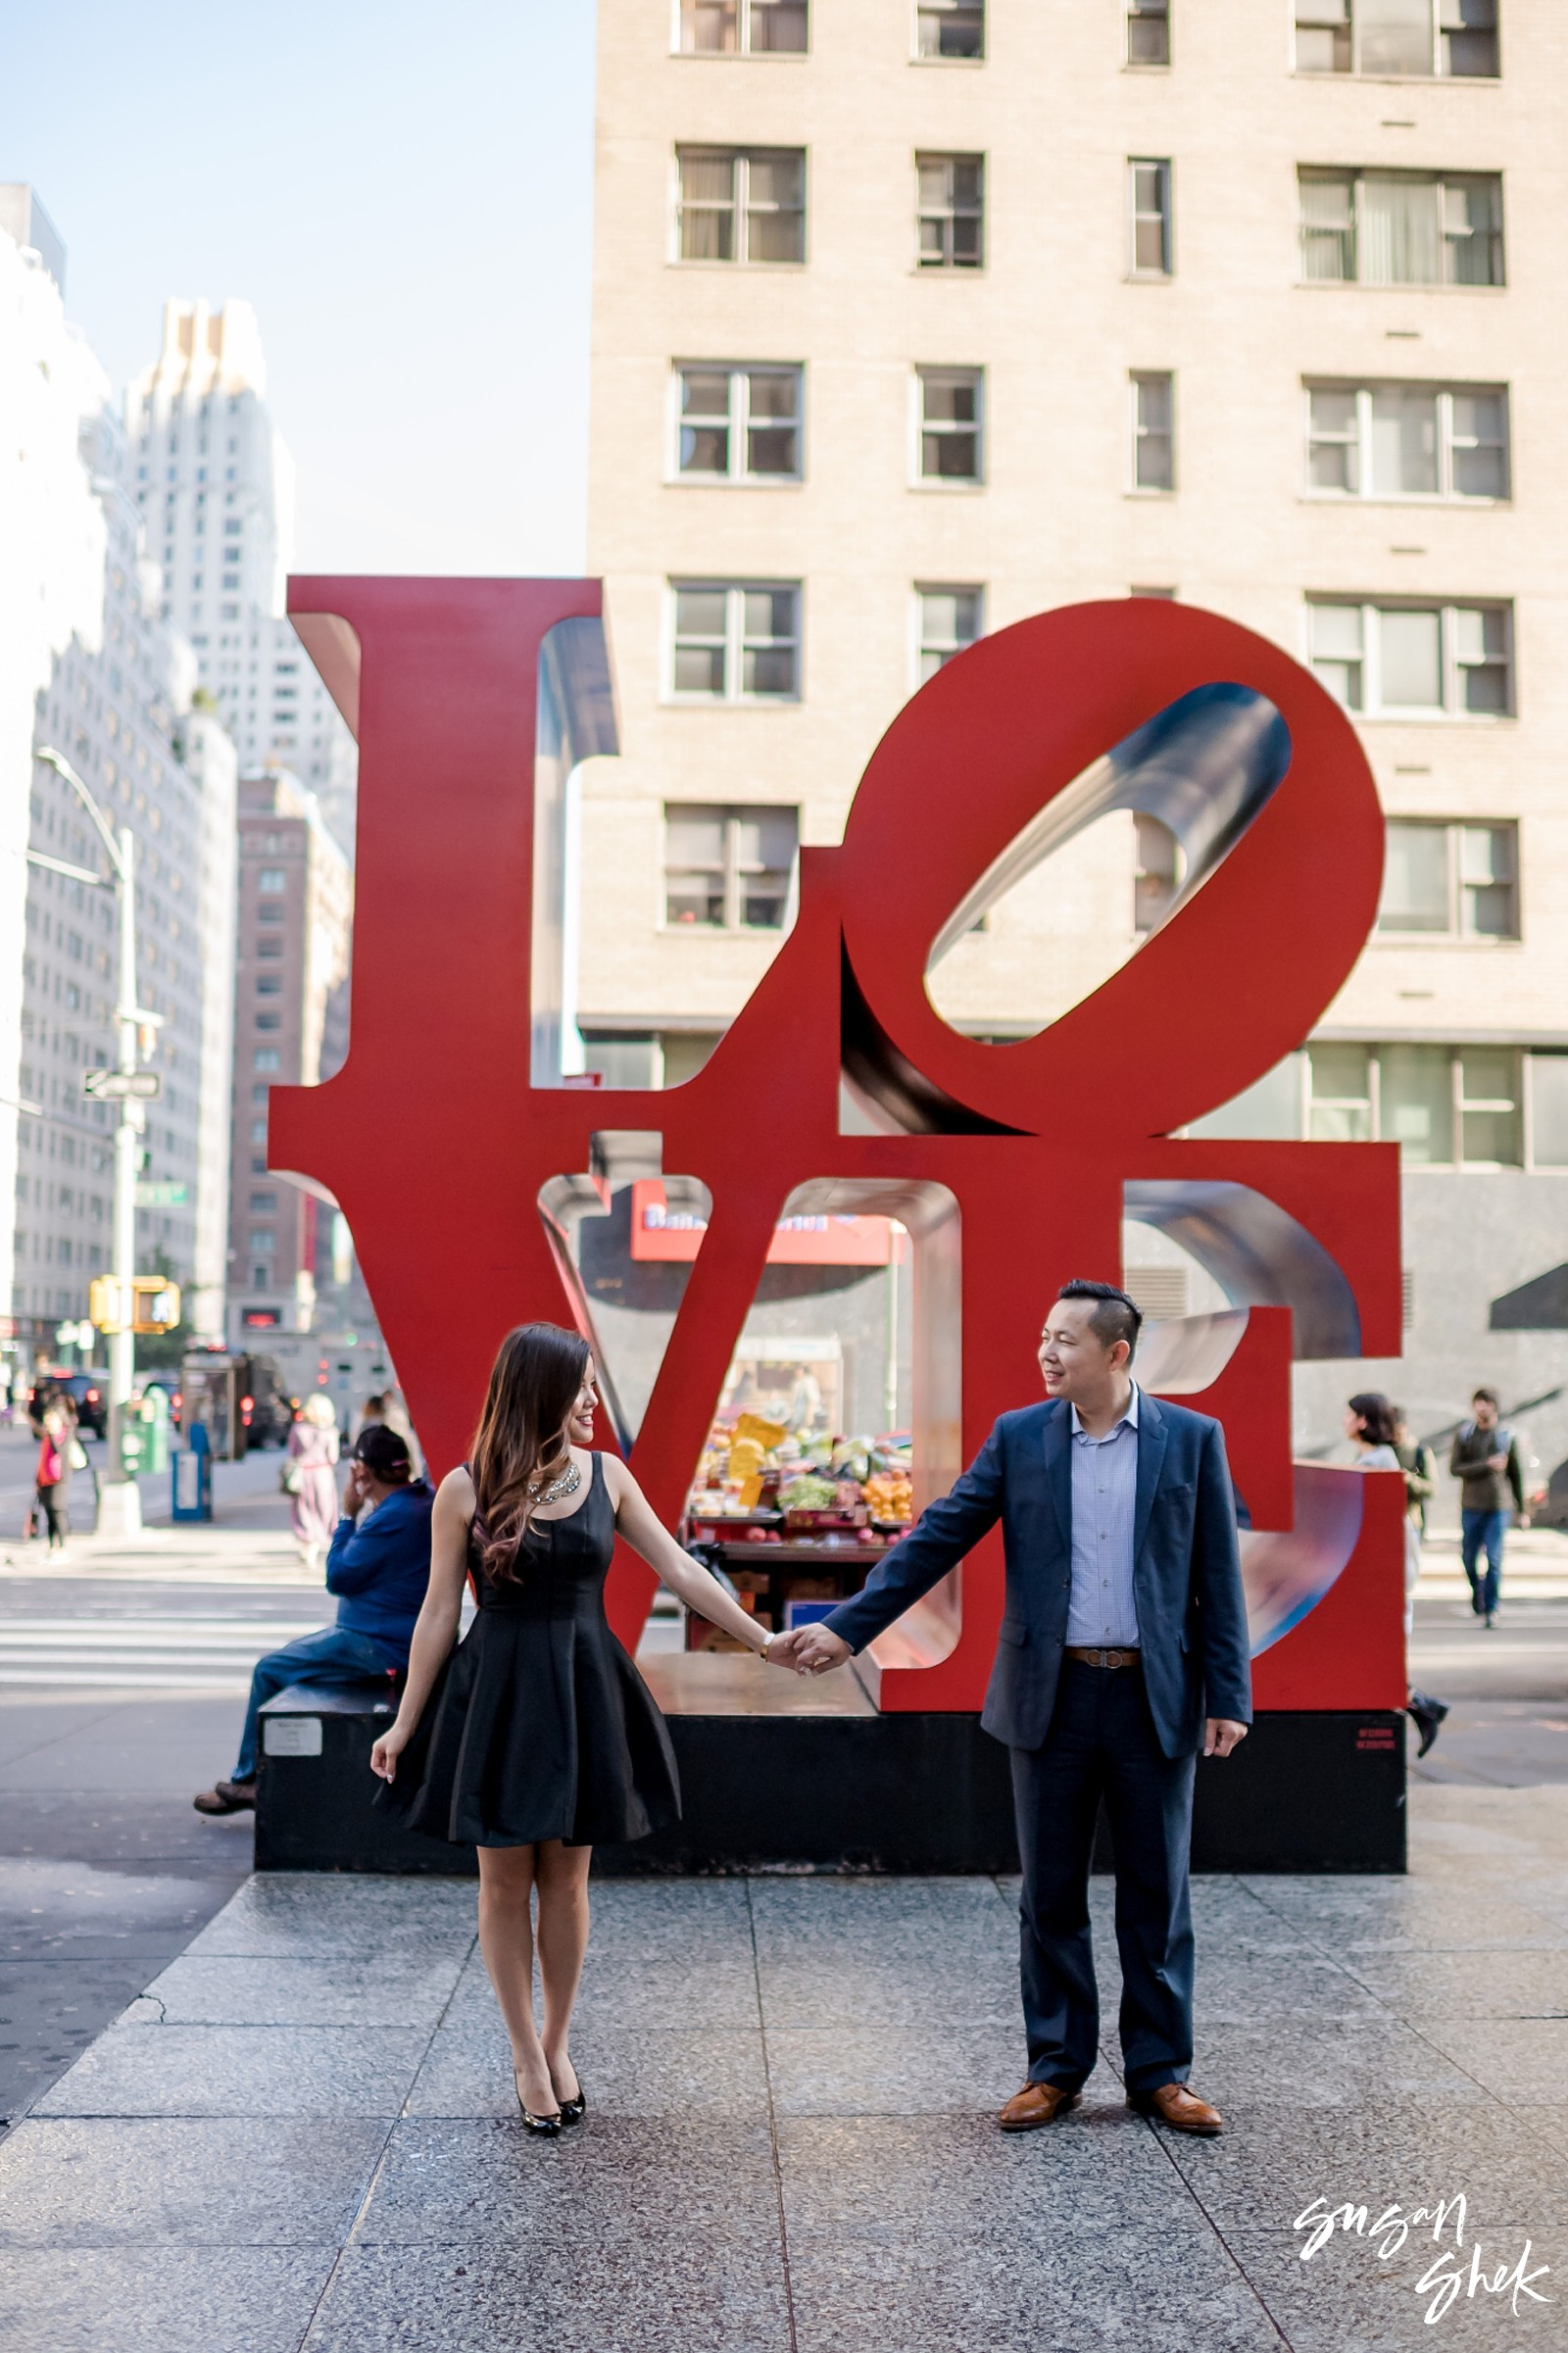 Love Sign Engagement Shoot, NYC Engagement Photographer, Engagement Session, Engagement Photography, Engagement Photographer, NYC Wedding Photographer